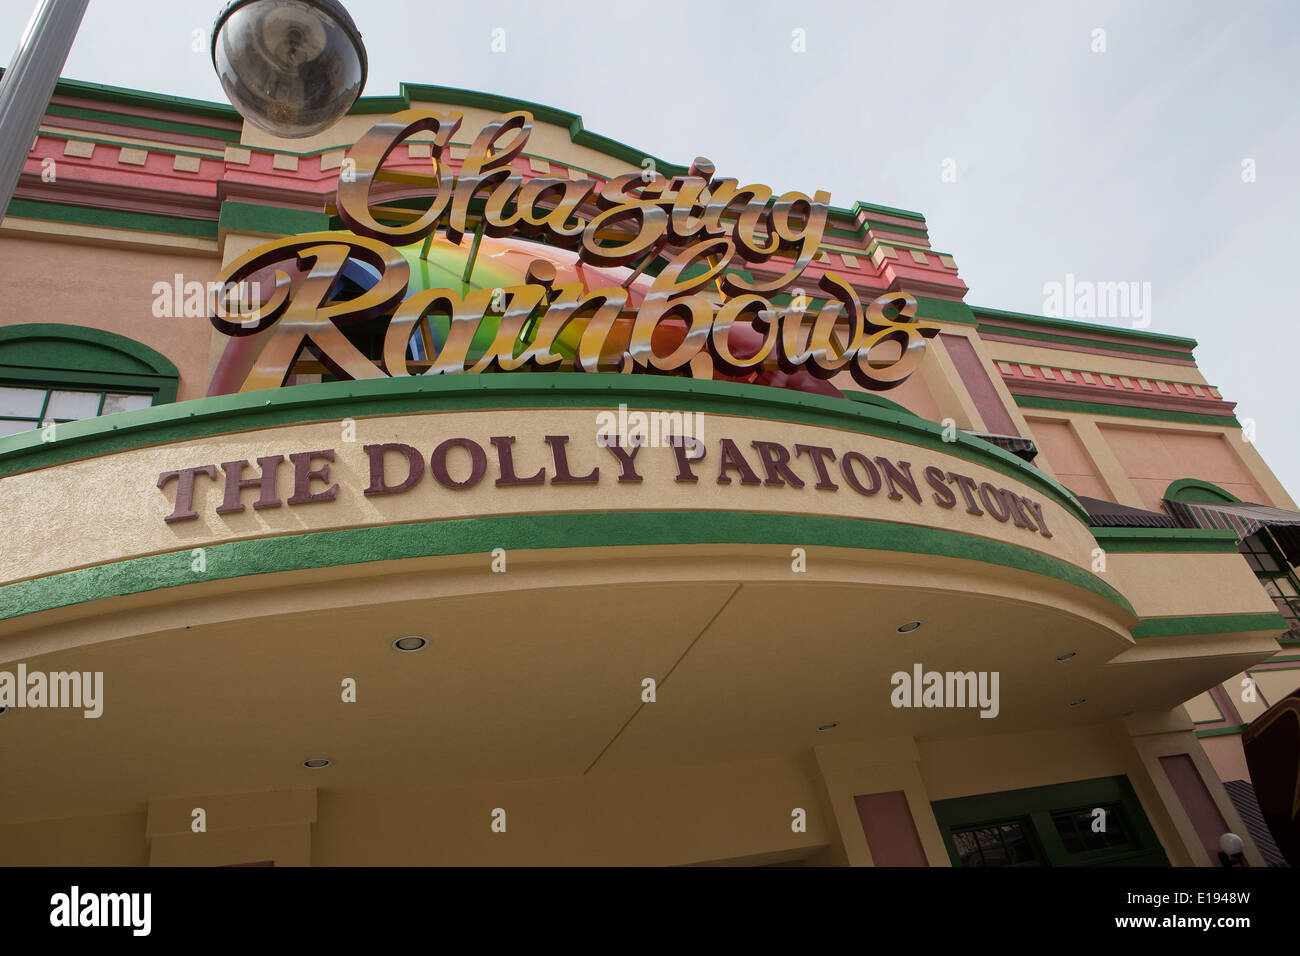 Chasing Rainbows Museum, Dolly Parton museum, is pictured in Dollywood theme park in Pigeon Forge, Tennessee - Stock Image